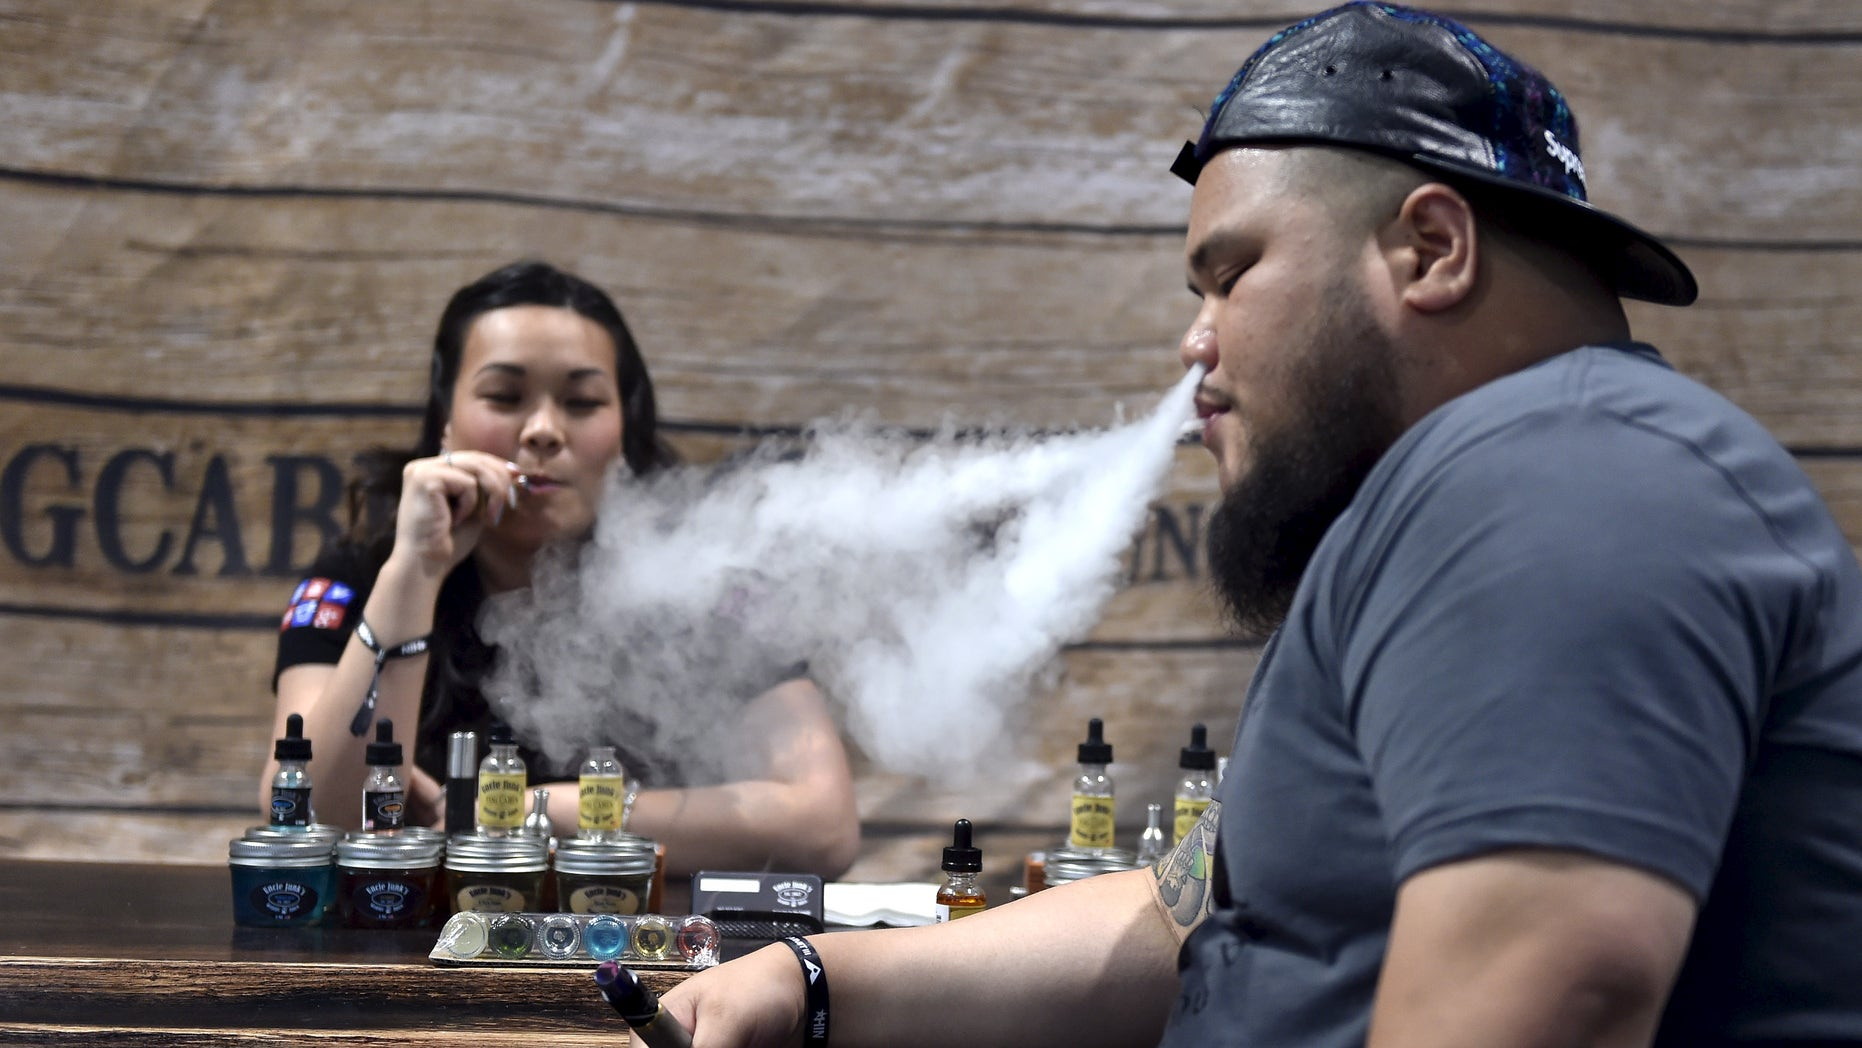 """Annie Young (L) and Dan Leano smoke e-cigarette at the Vape Summit 3 in Las Vegas, Nevada May 2, 2015. According to new research provided to Reuters, youngsters say that the flavors of the vaping liquids, and the """"ability to do tricks"""" are the top two reasons they consider electronic vaping devices cool. REUTERS/David Becker"""